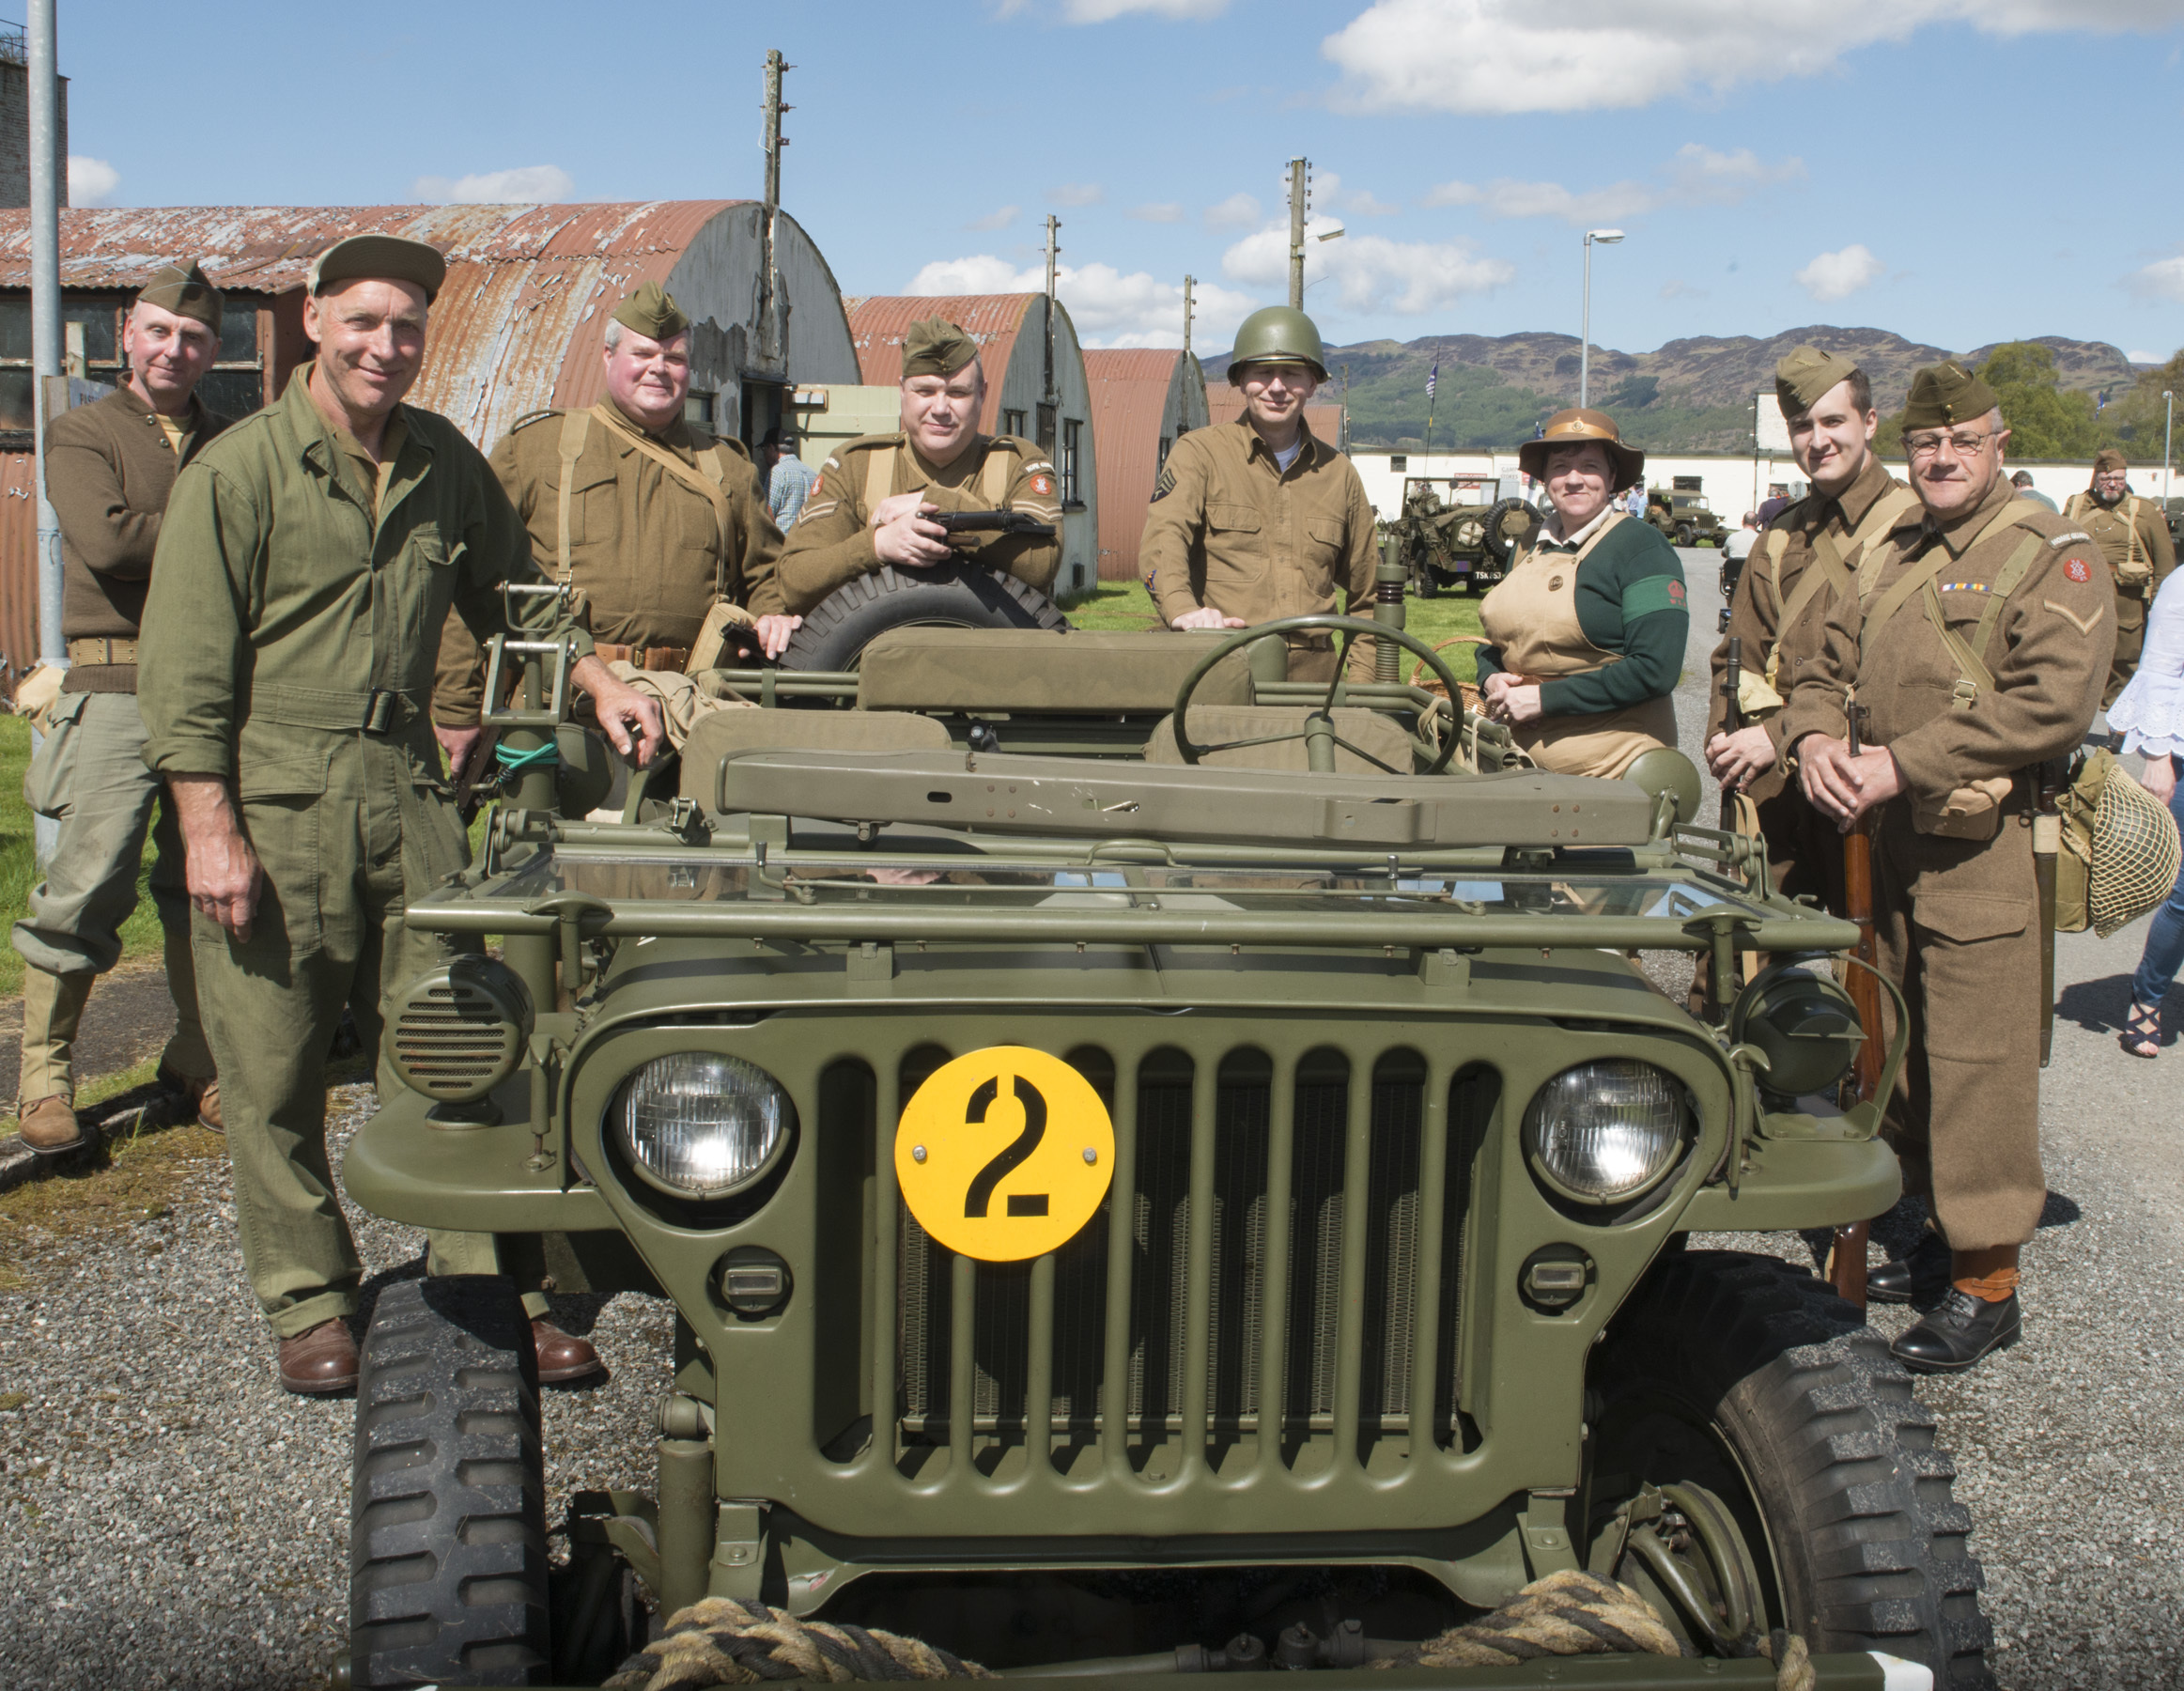 Some of the living history on display at Carry On, Culty